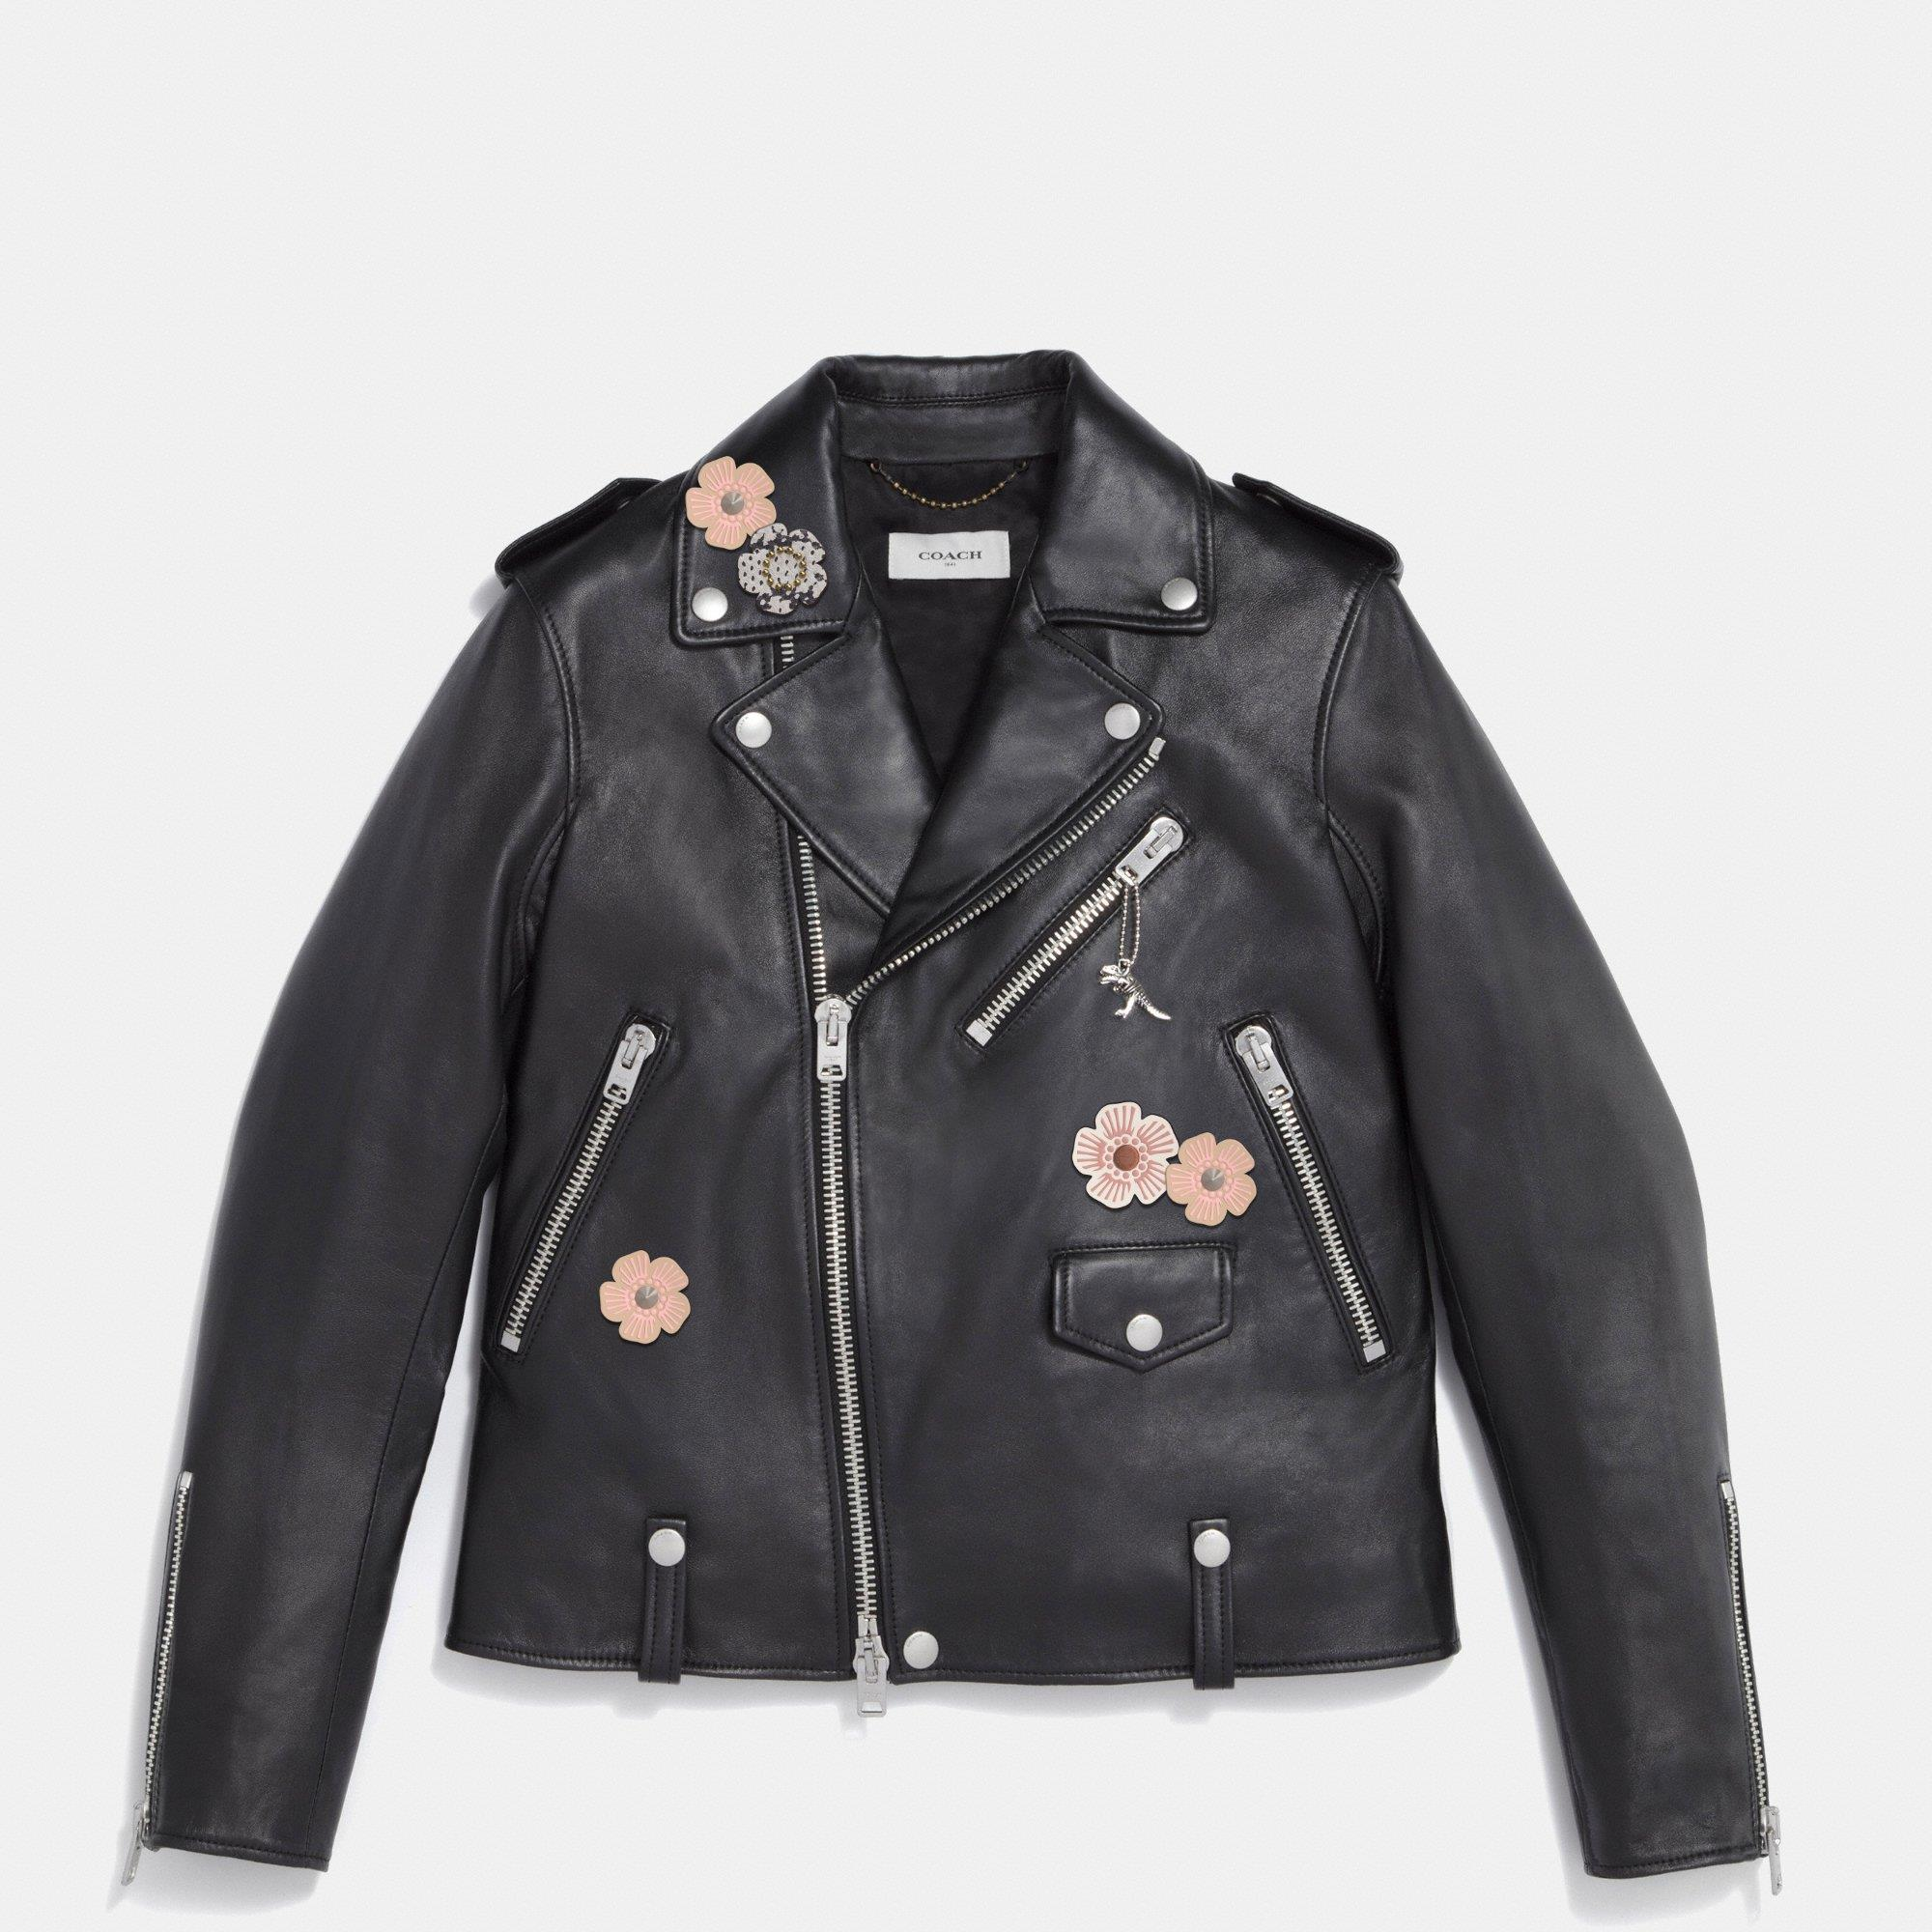 Customize MOTO JACKET